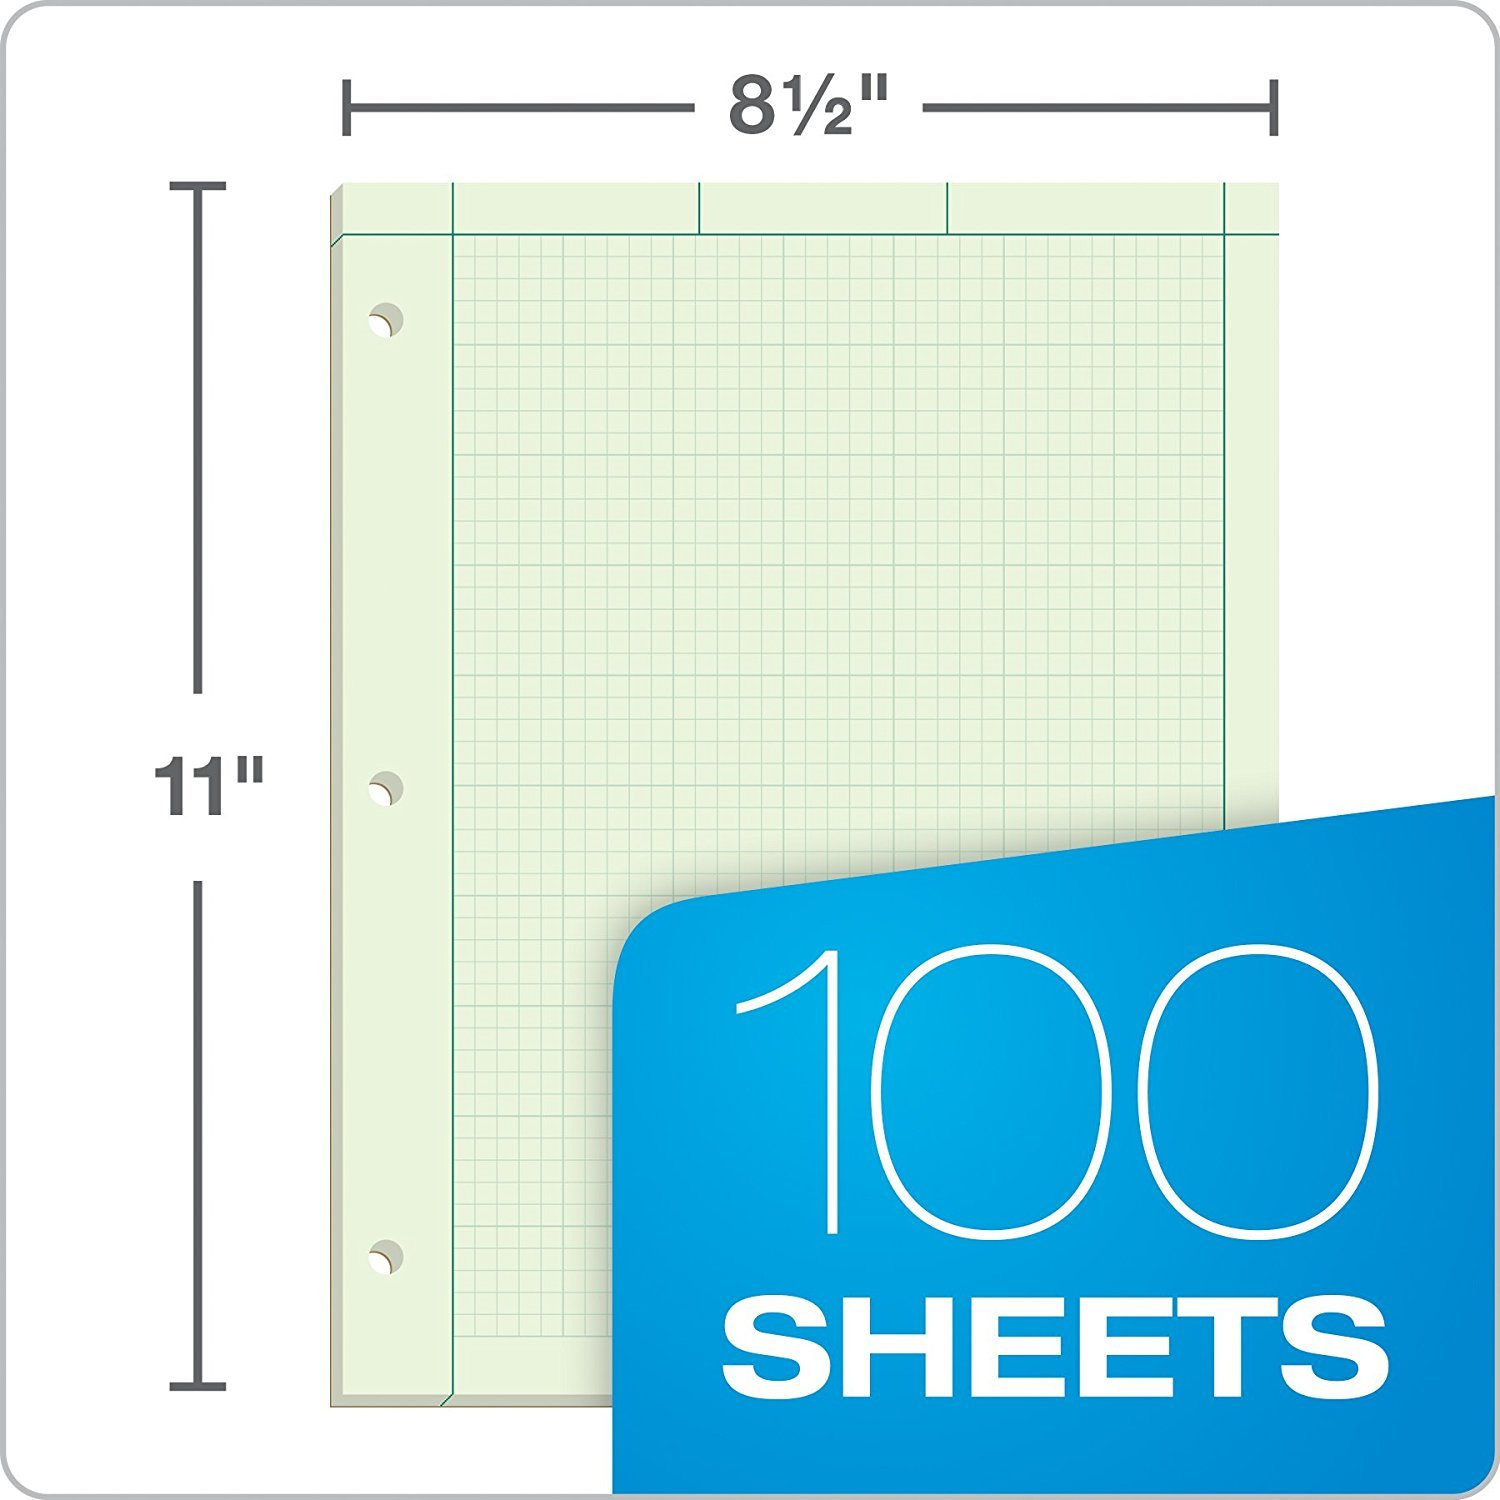 Ampad Evidence Engineering Pad, 100 Sheets, 5 Squares Per Inch, Green Tint, 11'' H x 8 1/2 W, Pack Of 5 (22-142) - Bundle Includes Universal Letter Opener by Ampad (Image #6)